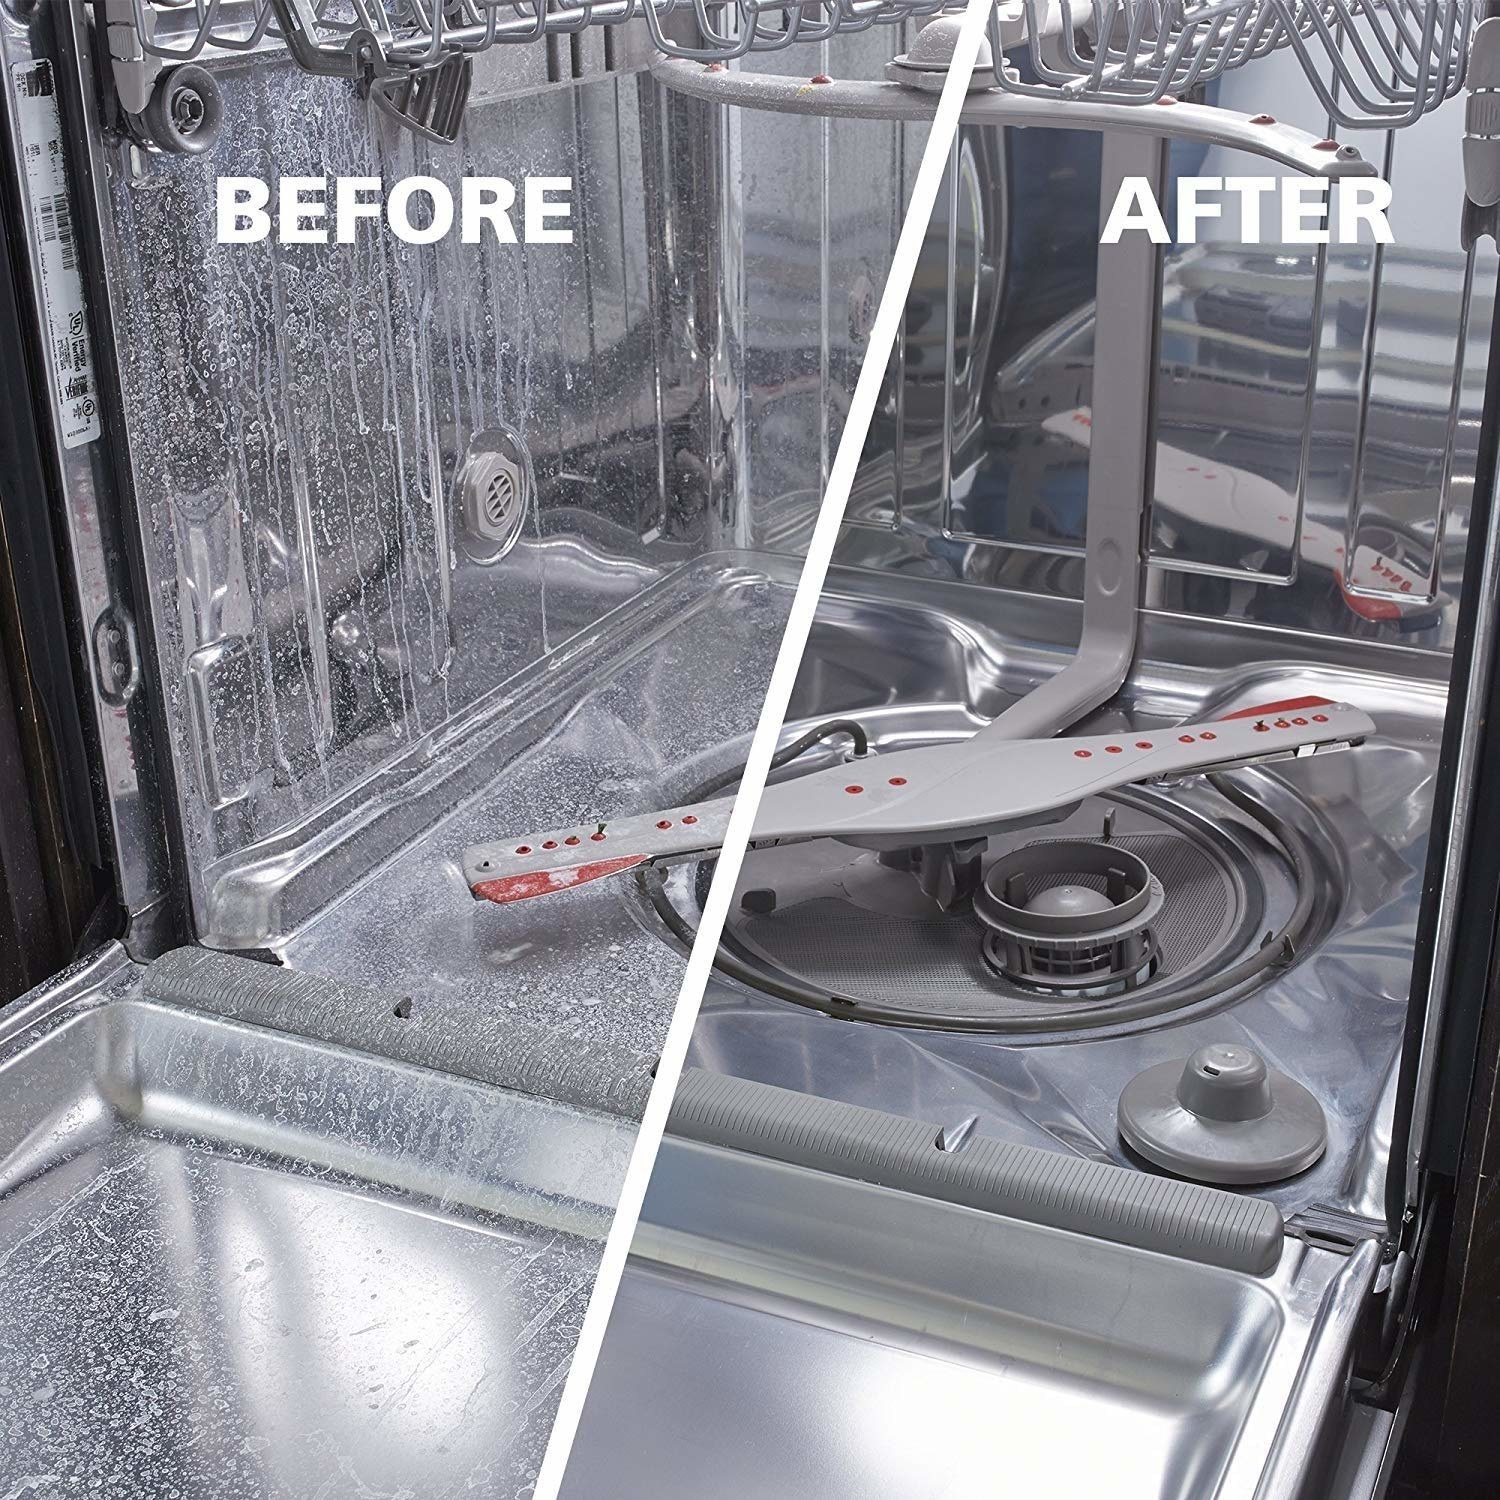 Before-and-after photo showing results of using dishwasher cleaner